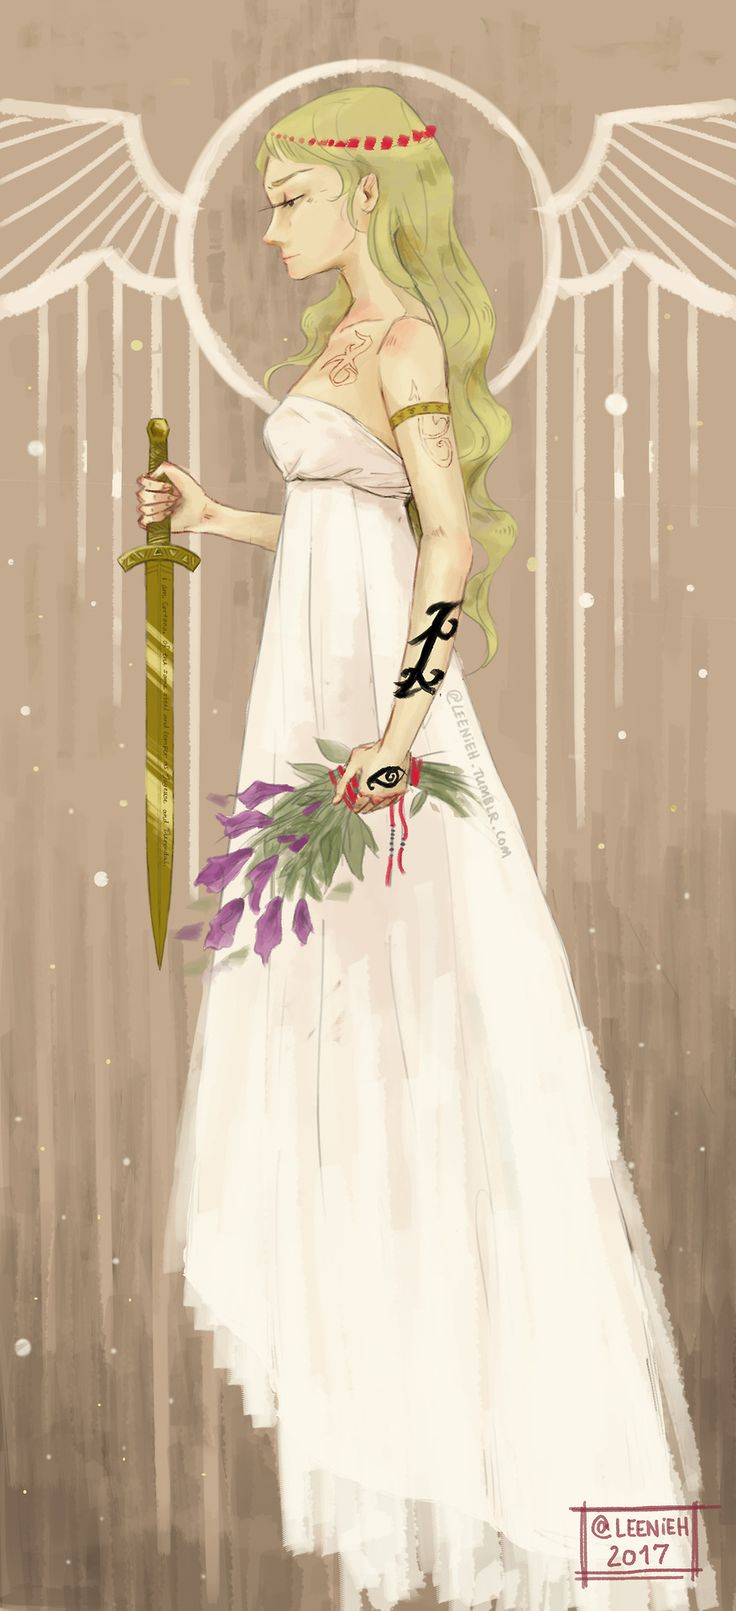 """leenieh: """" emma carstairs from cassie clare's 'the dark artifices' (can't wait for book 2!!) also, this was inspired by cassandra jean's art style, if you liked this, you'll definitely love her..."""